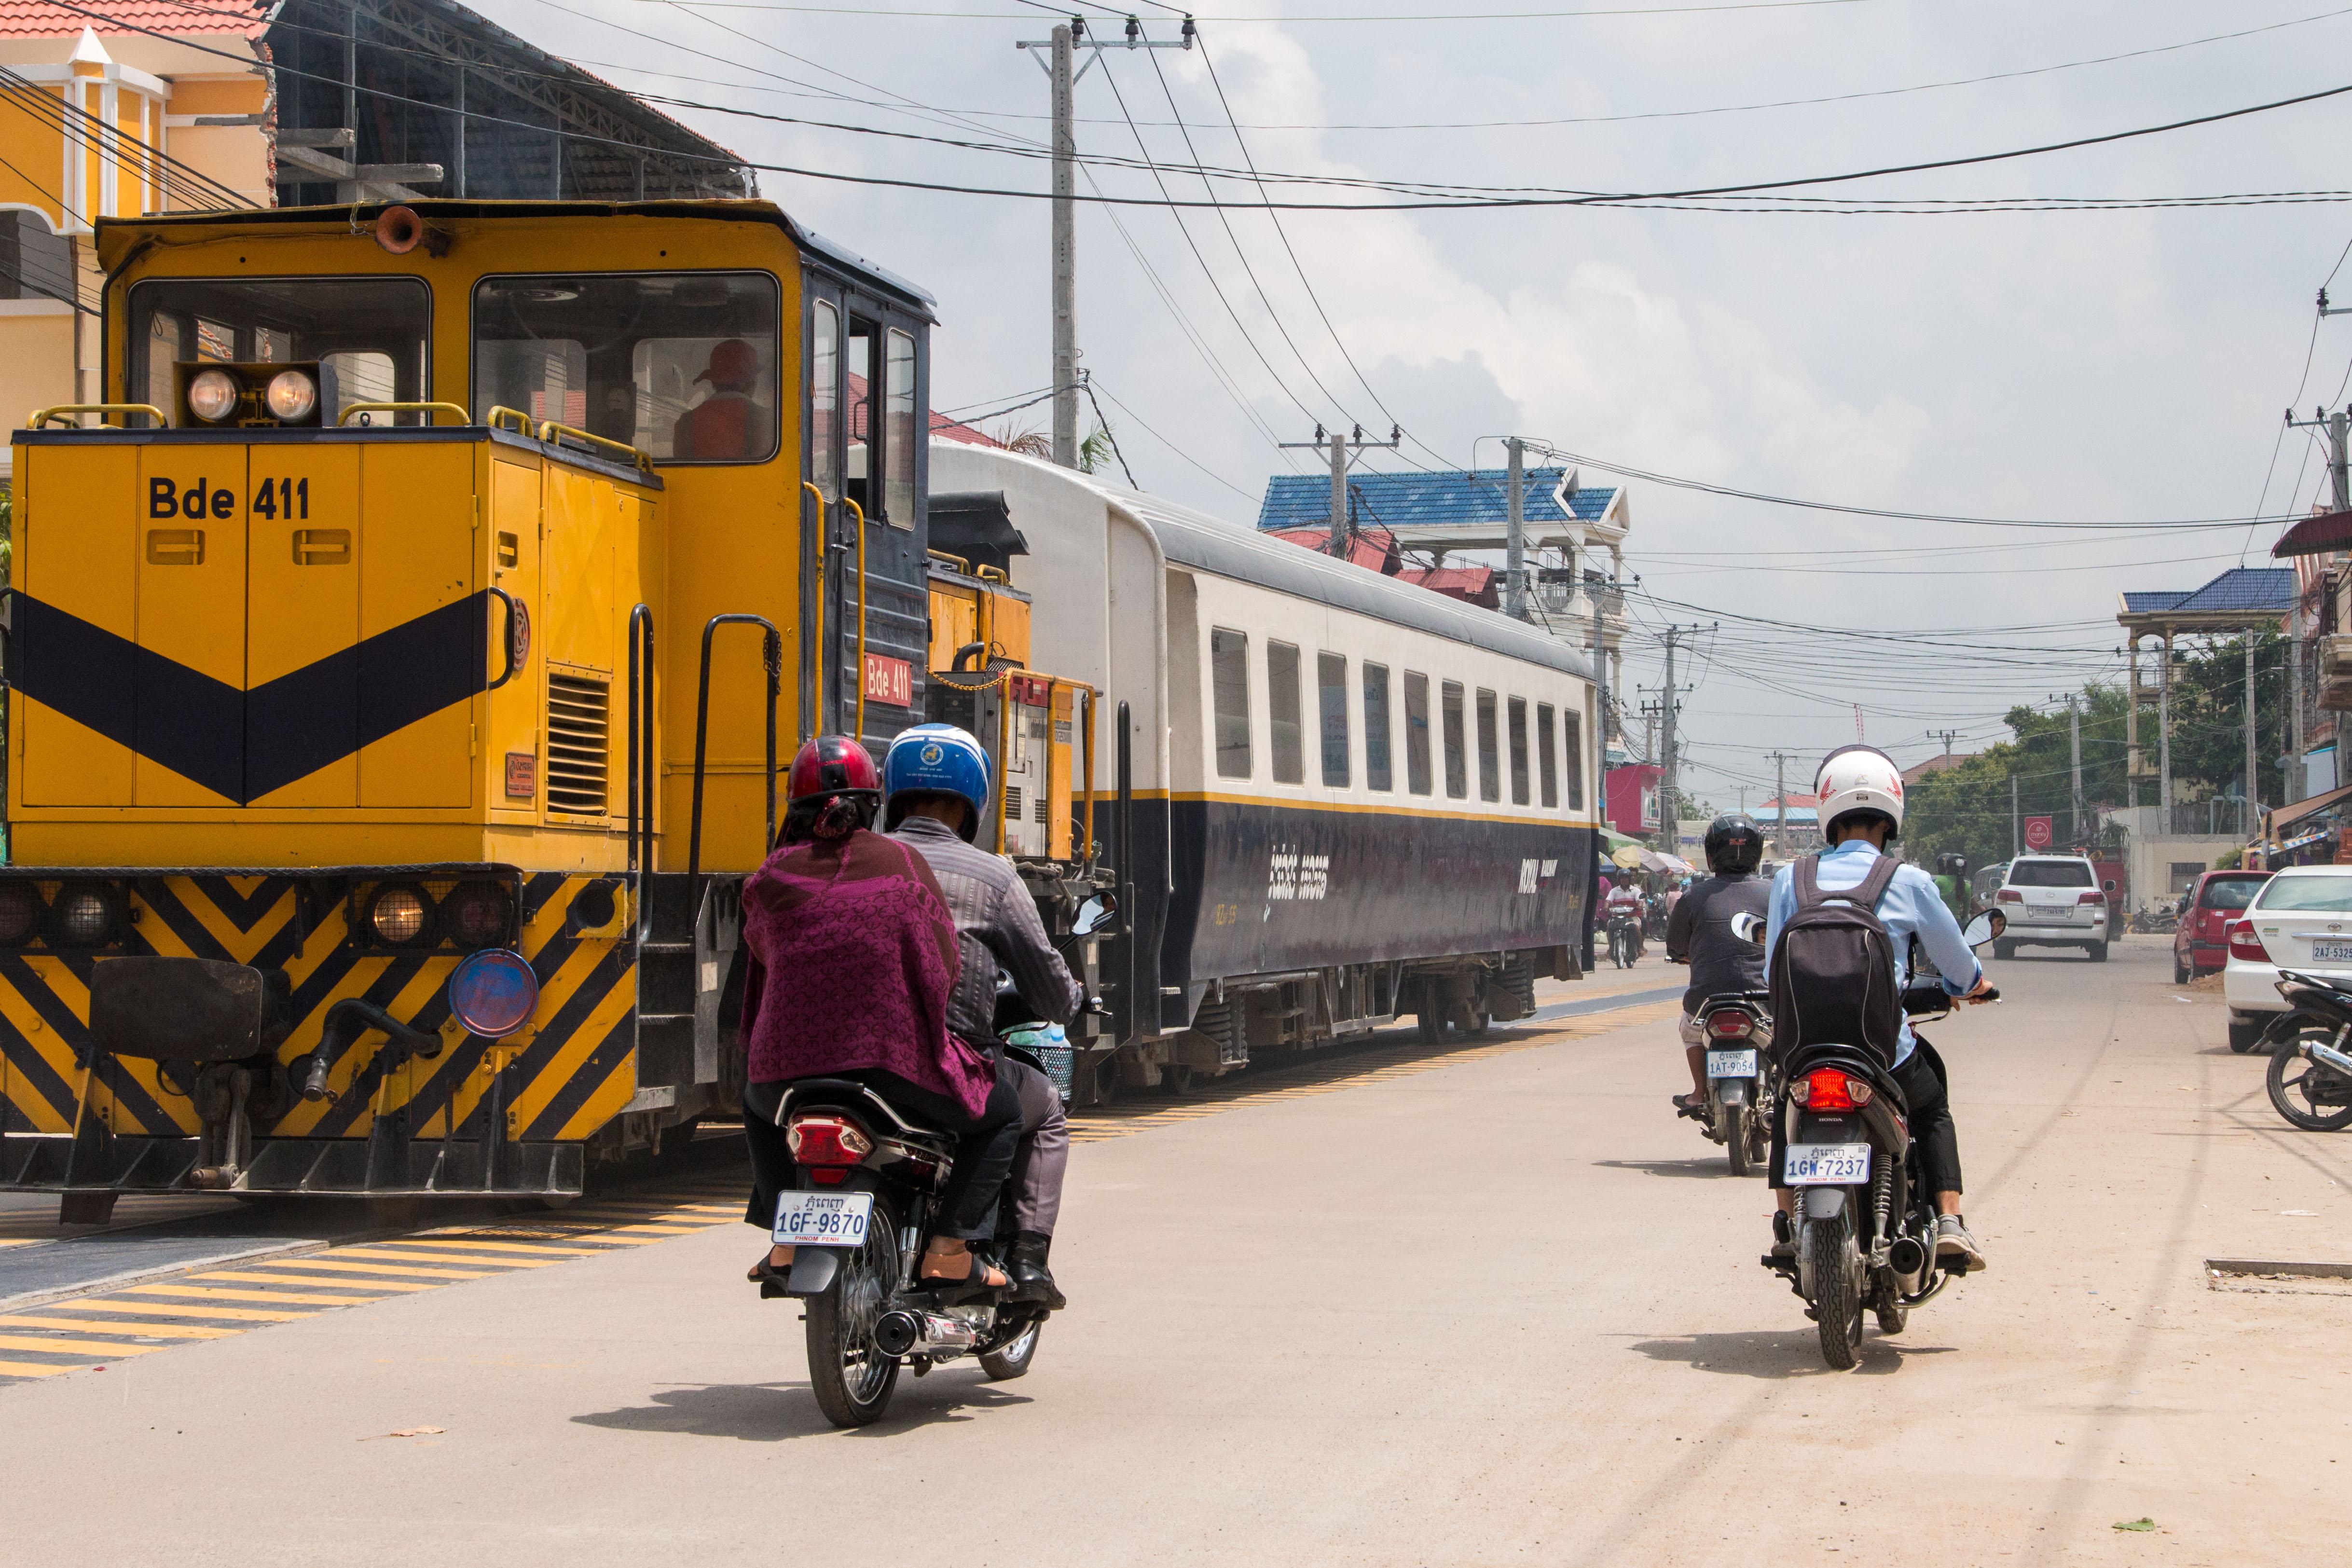 Road space is at a premium as the train shuttles to the airport in Phnom Penh.